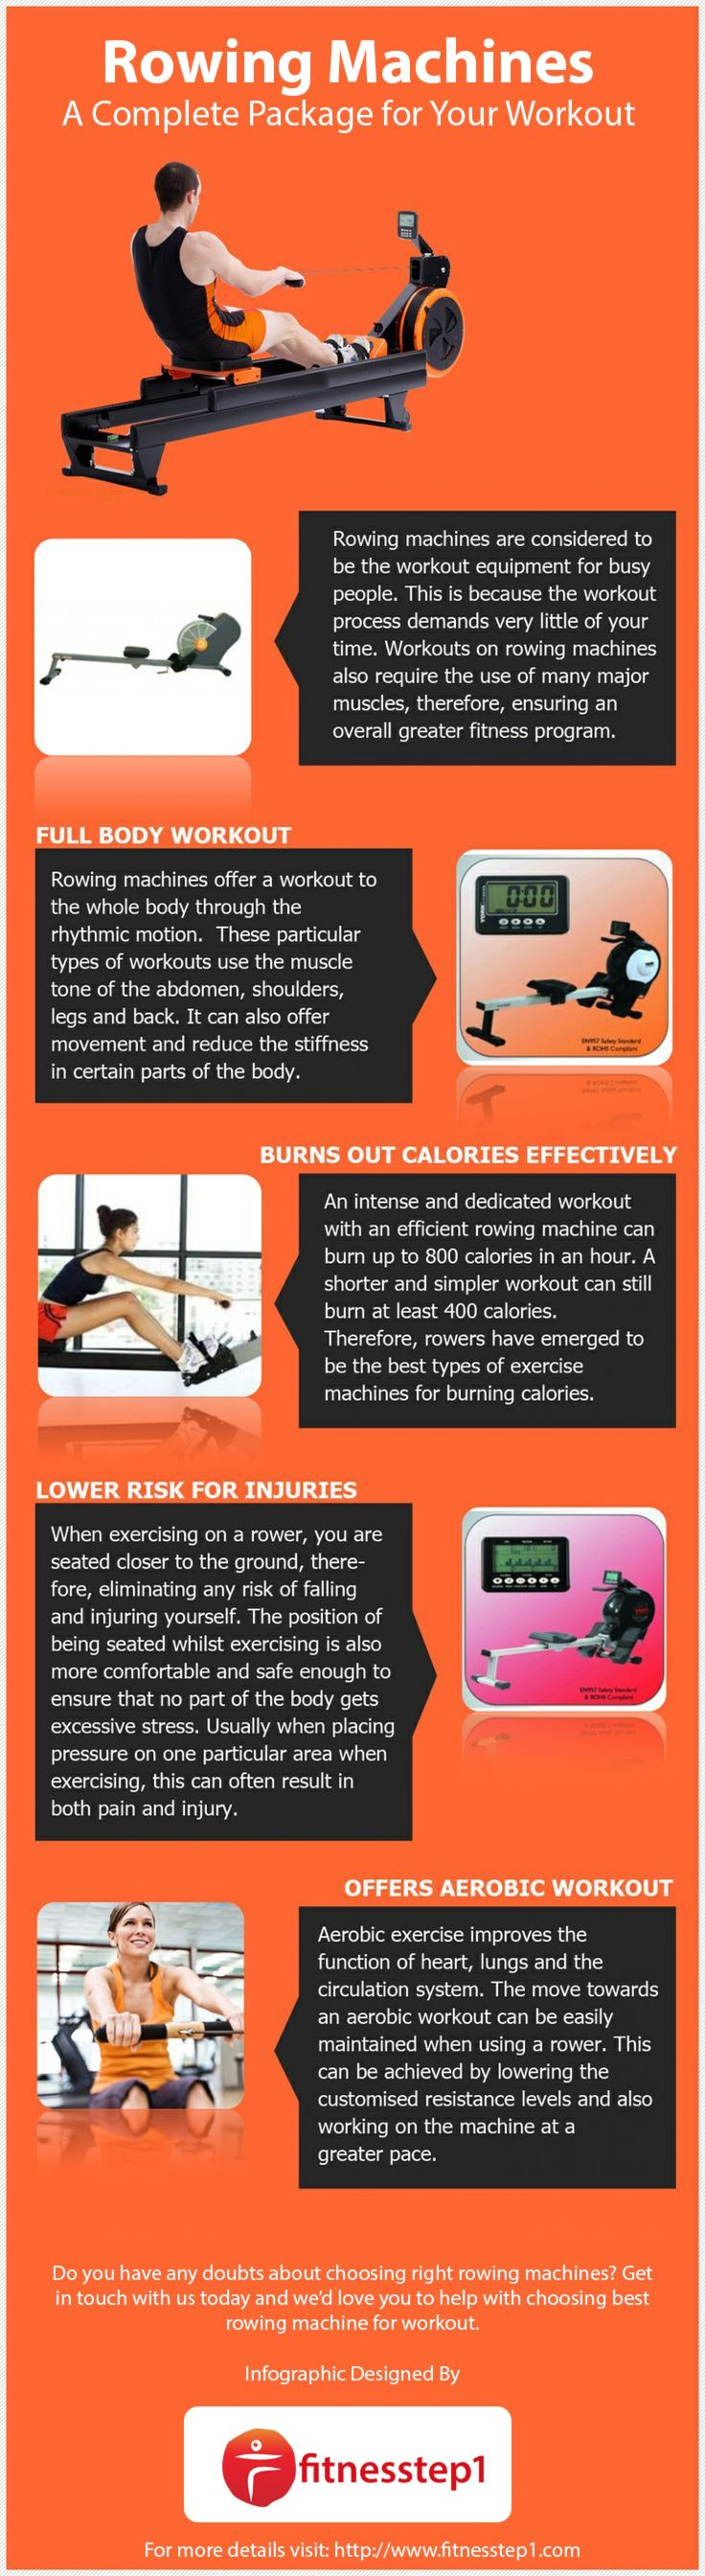 Rowing Machines: A Complete Package for Your Workout Infographic